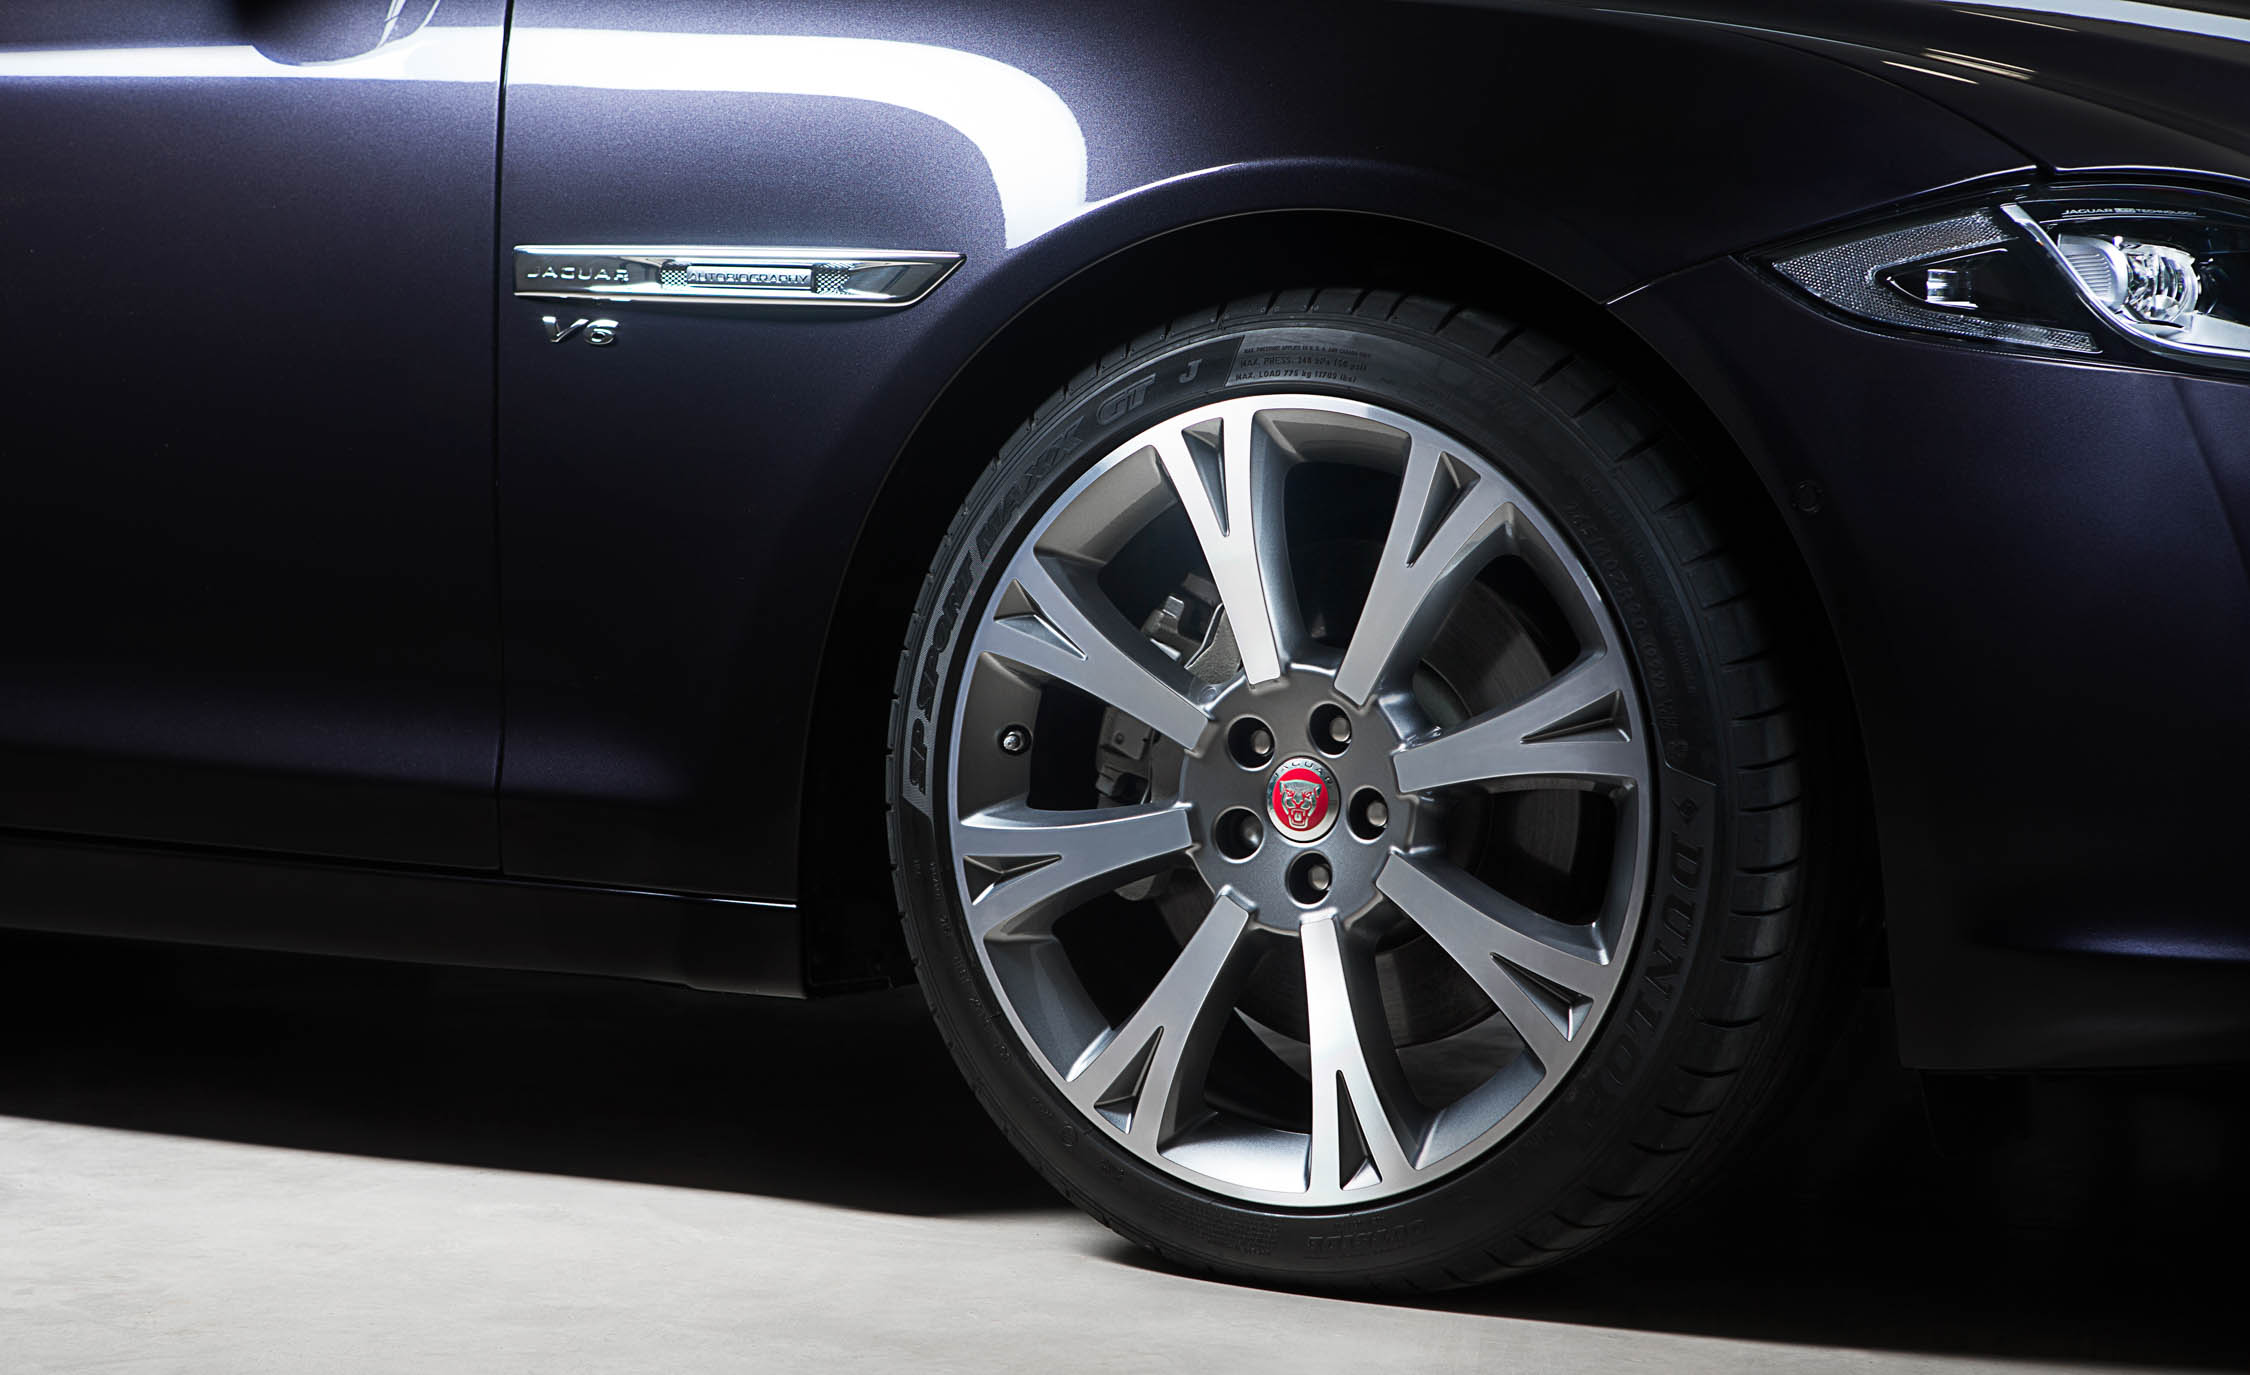 Wheel Trim 2016 Jaguar XJL